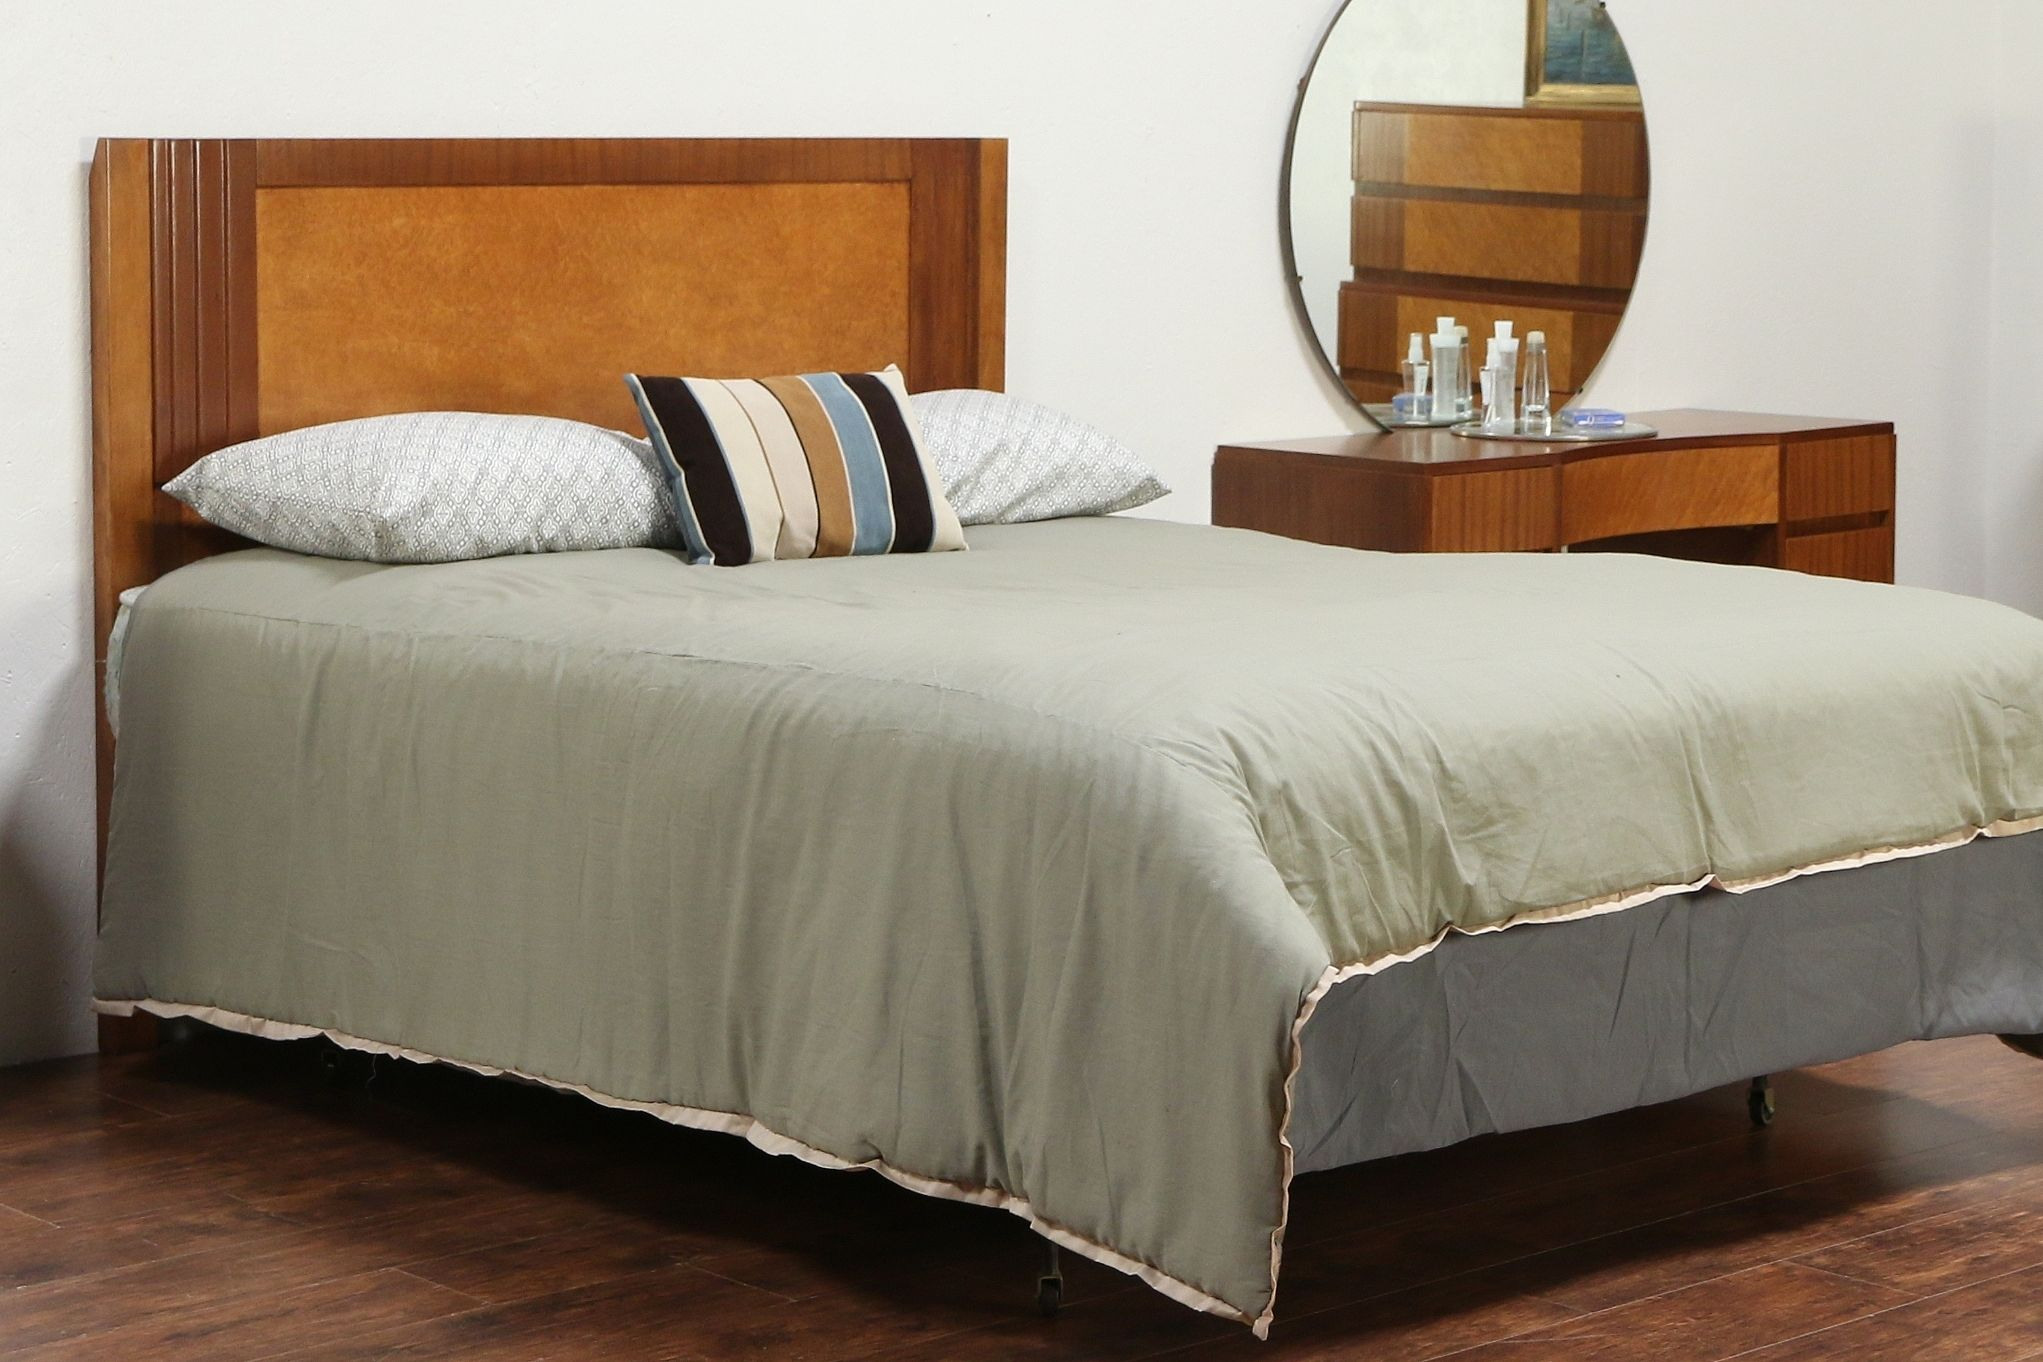 Bed Headboard Midcentury Modern Queen Size Bed Headboard Vintage Maple Mahogany Rway 29525